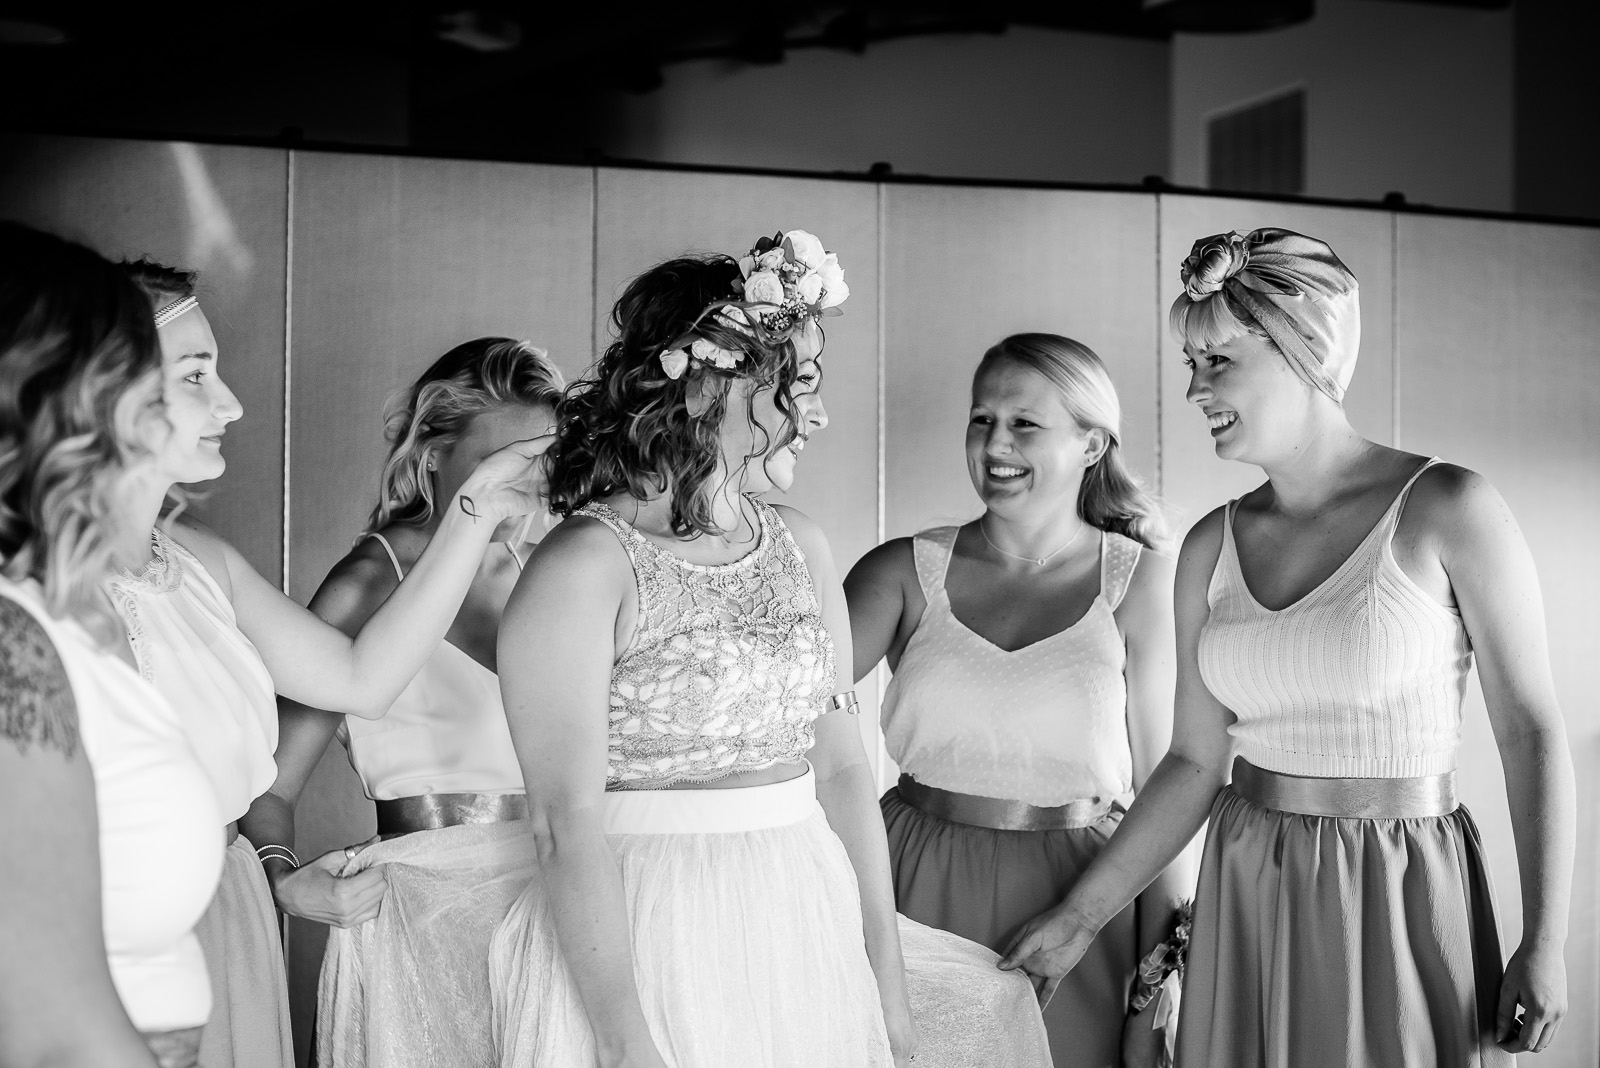 Eric_and_Christy_Photography_Blog_Wedding_Lauren_Jon-4